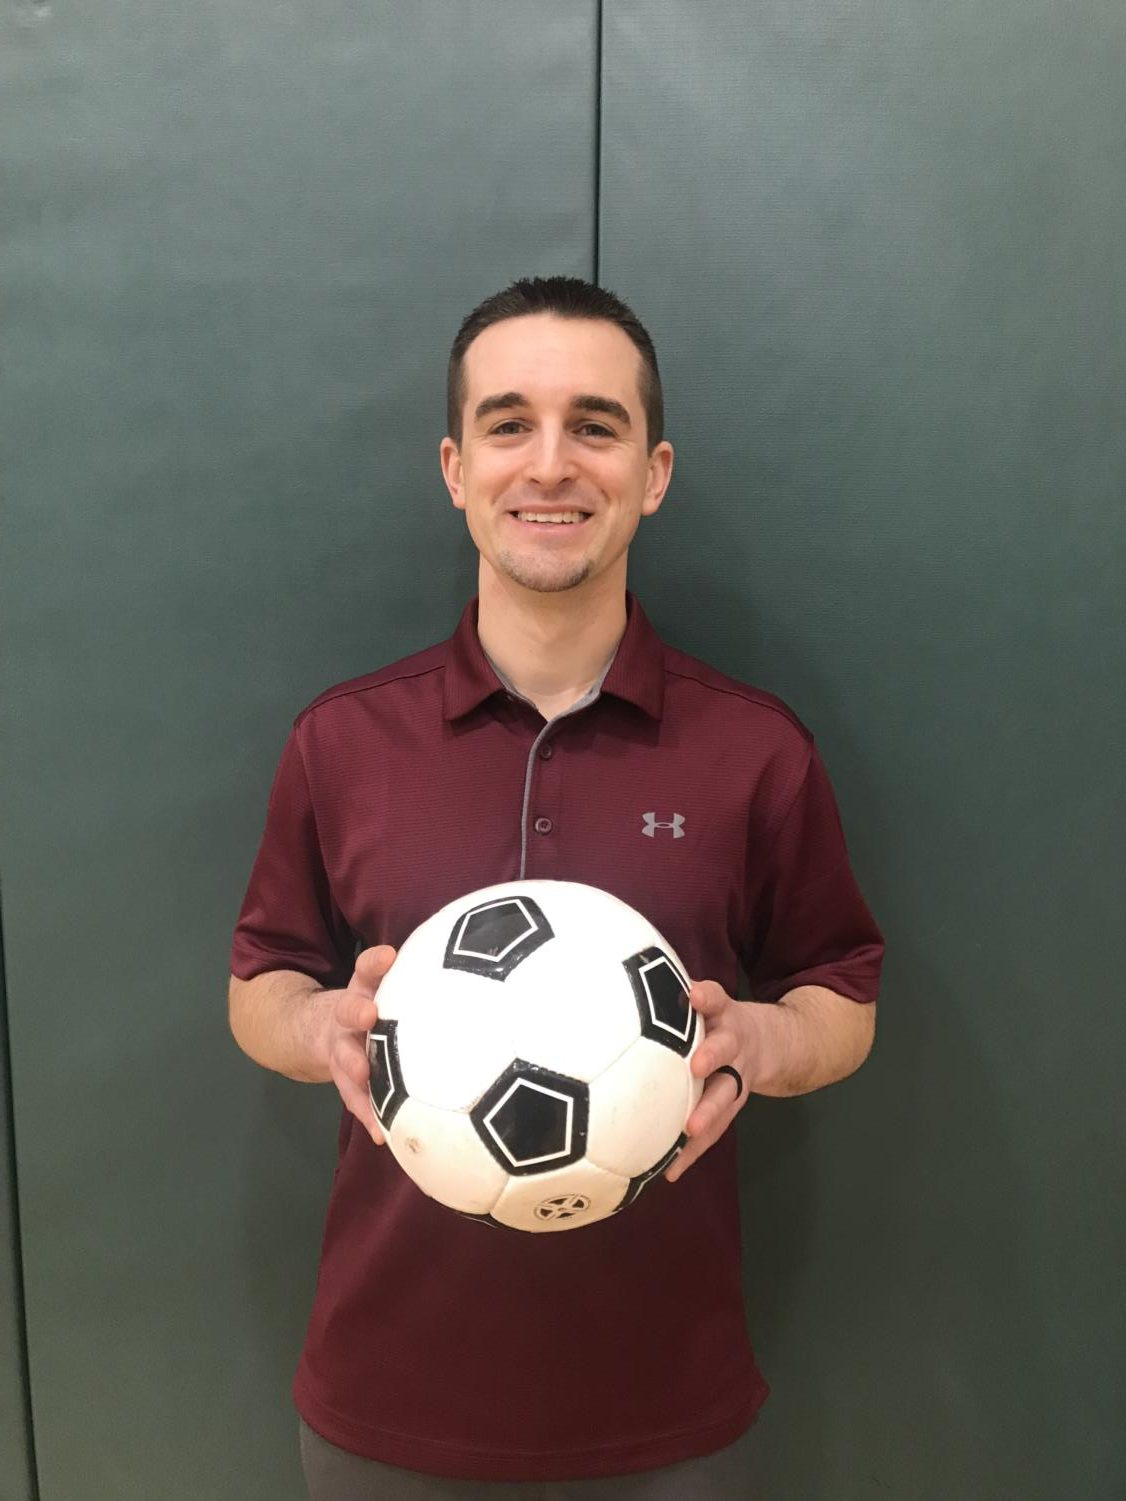 There's a new sheriff in town-- Former junior varsity coach Nicholas Boorman was named the new boys soccer varsity coach following the retiring of longtime varsity coach Steve Waters. Boorman hopes to build his team on the field, in the classroom, and in the community.